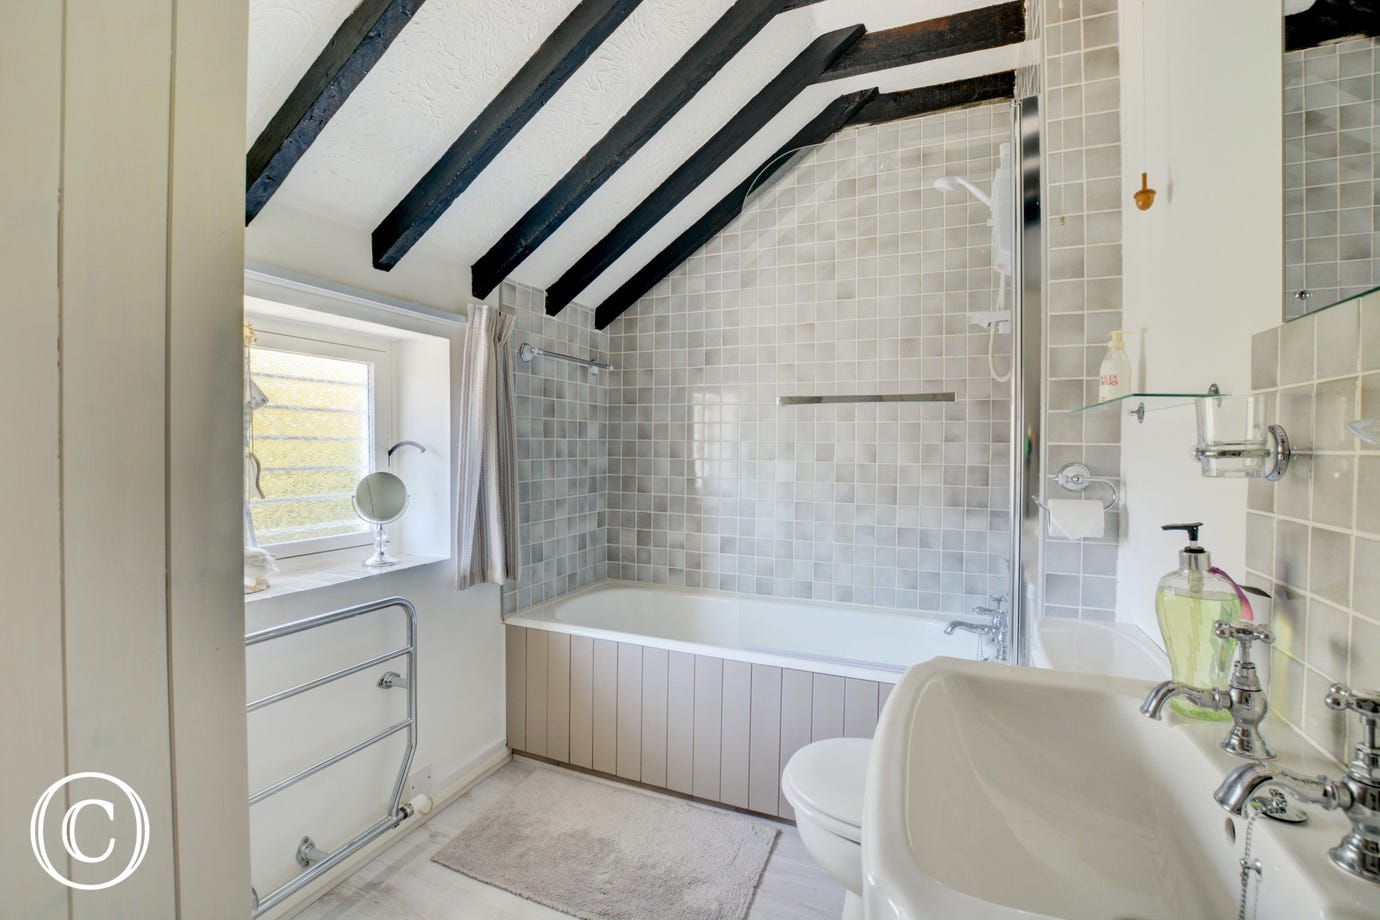 Bathroom with bath, washbasin and wc